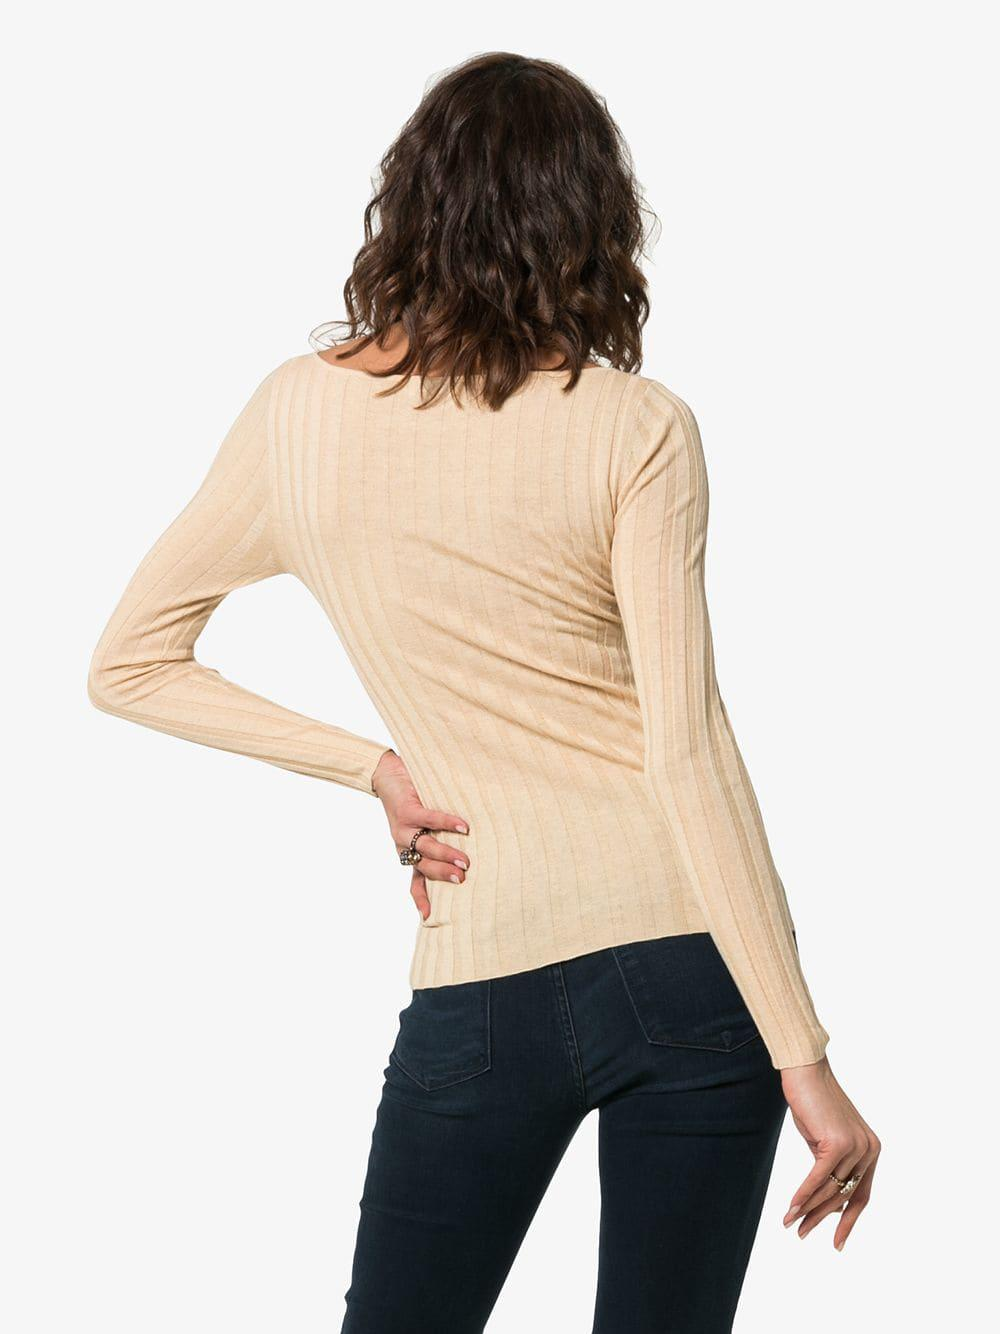 96c4b1a1fdc5ef Lyst - Totême Toury Ribbed Wool And Cashmere Top in Natural - Save 3%